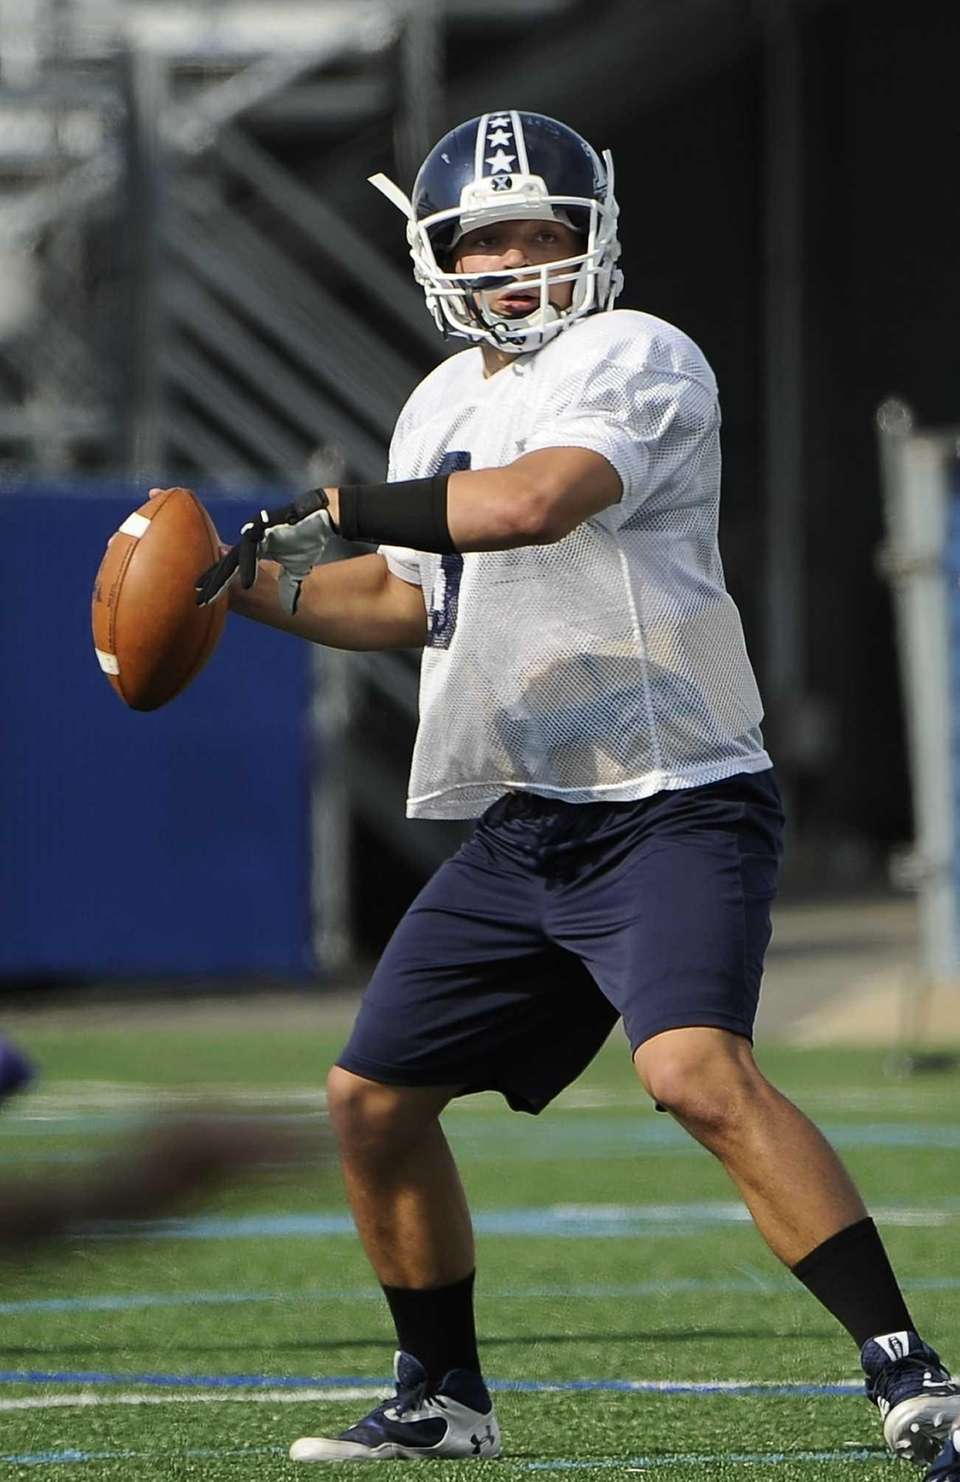 Long Island quarterback AJ Otranto looks for an